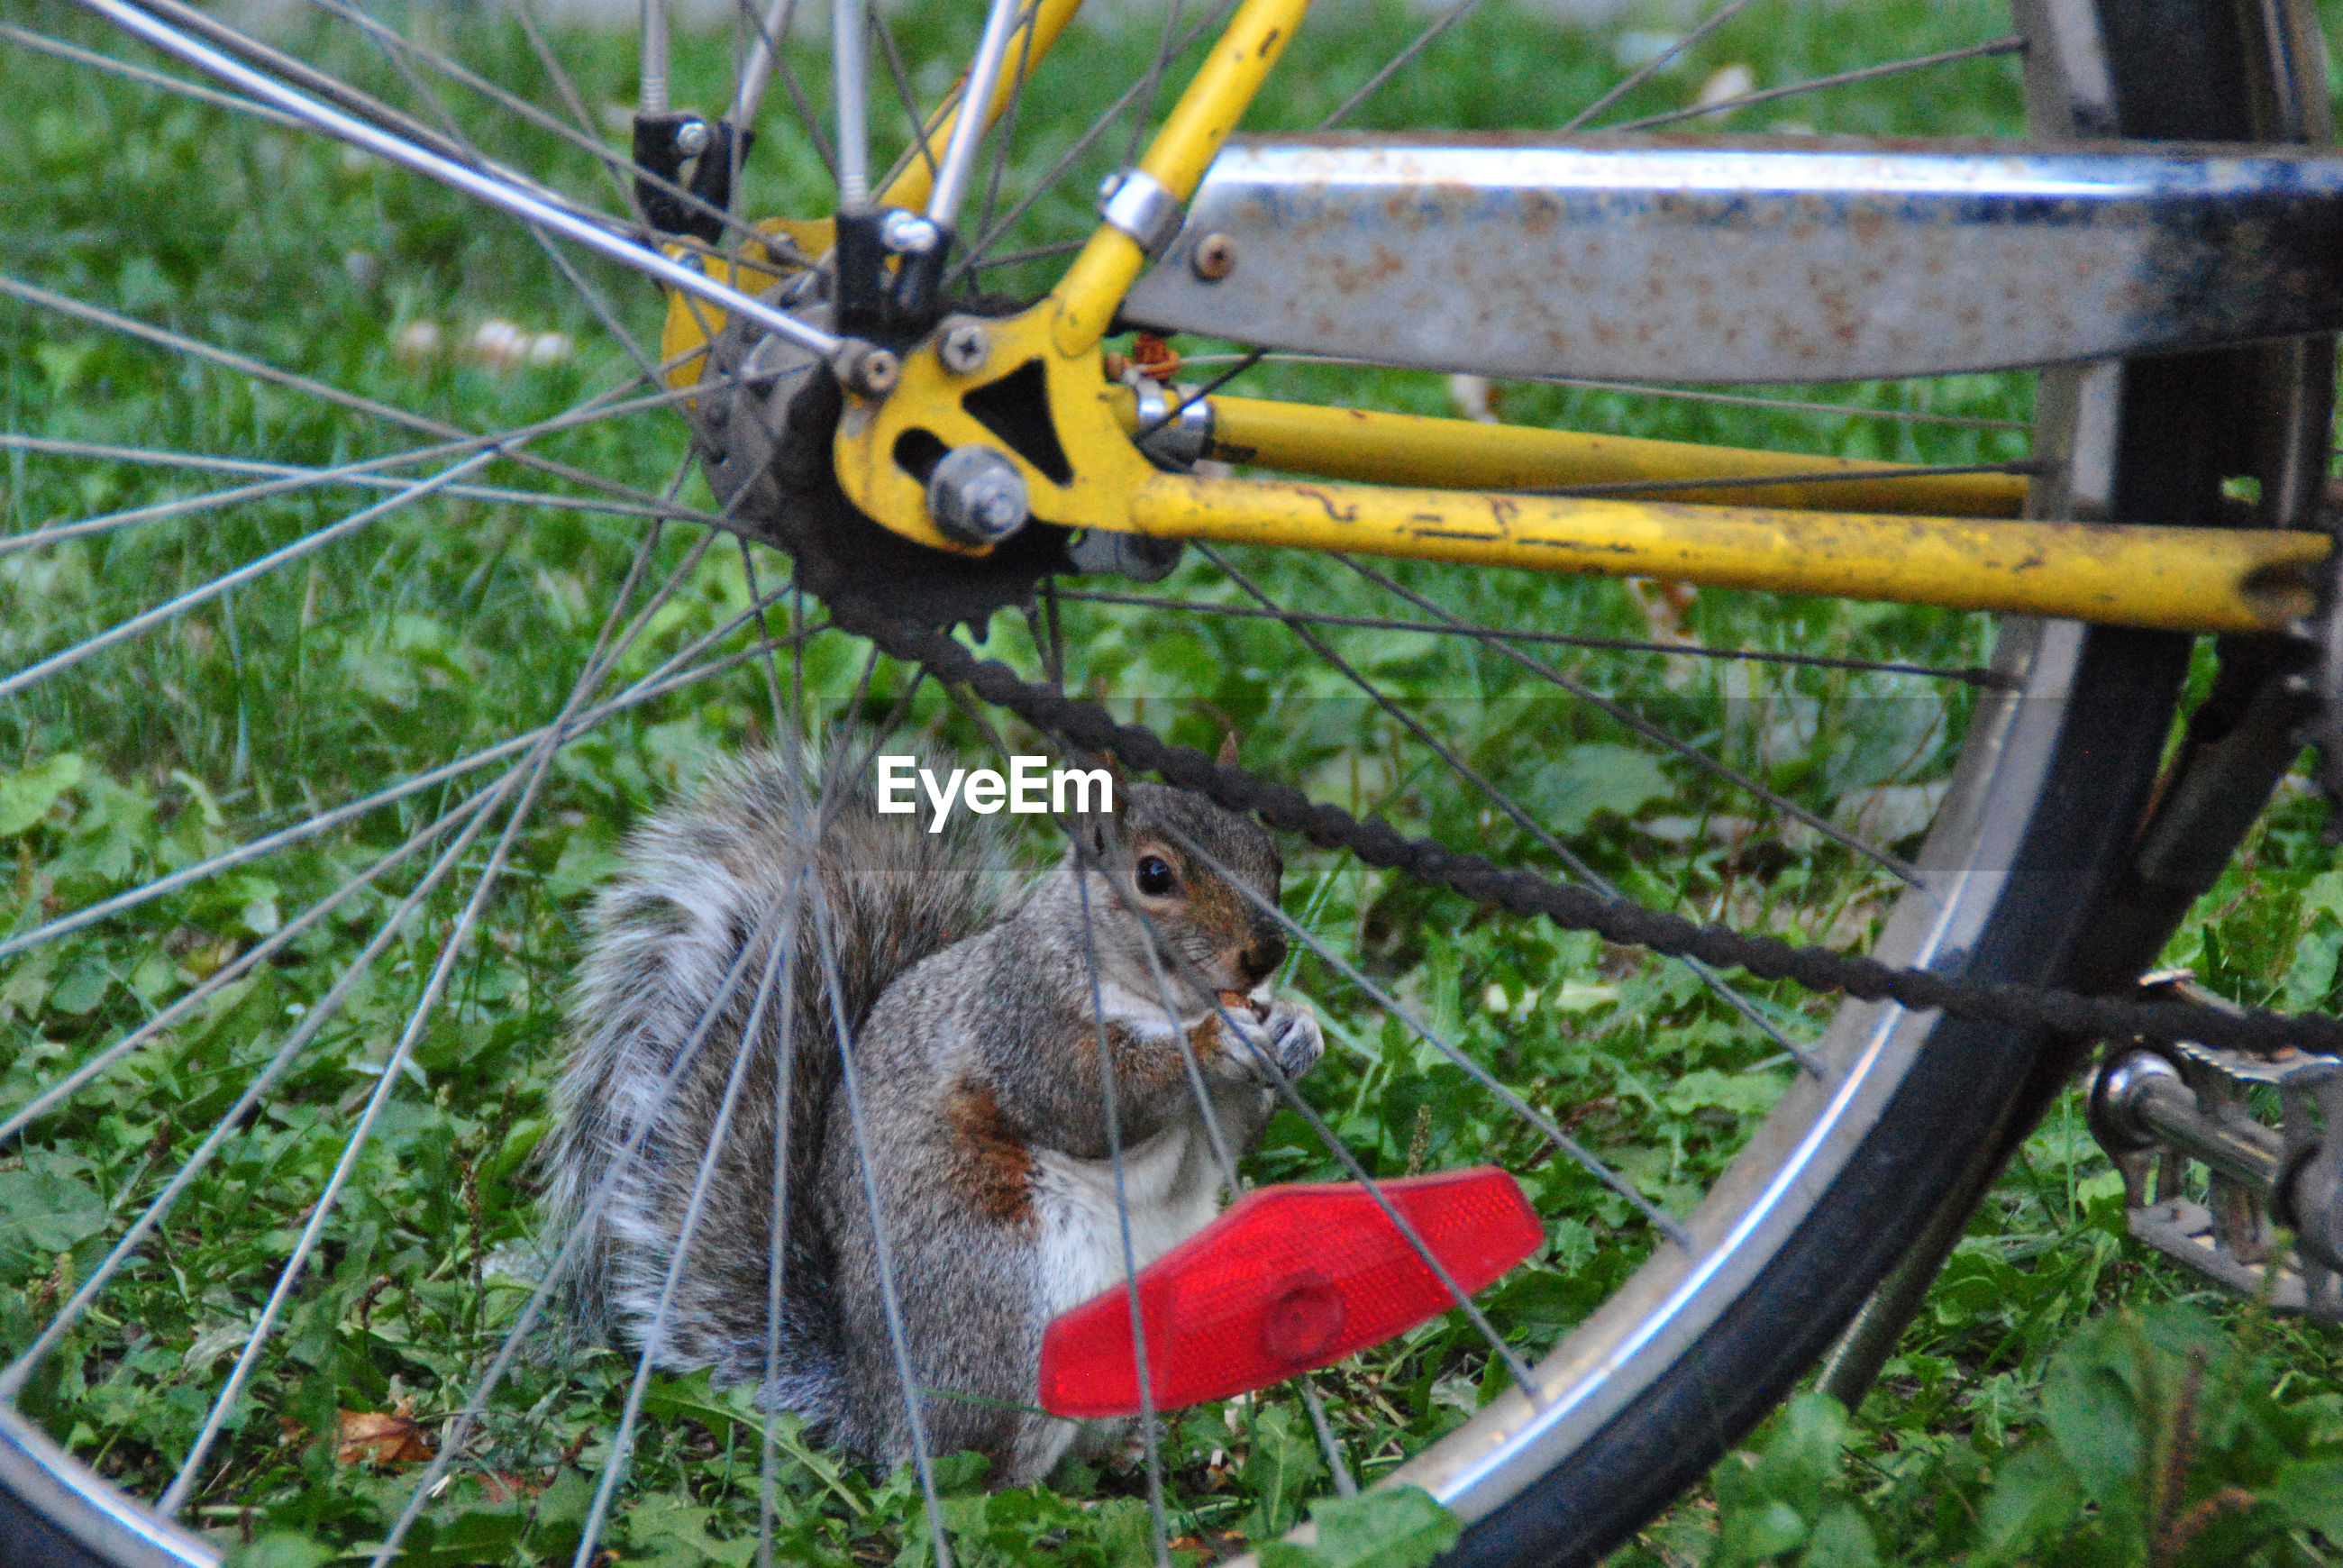 Close-up of squirrel eating food on grass seen through bicycle wheel